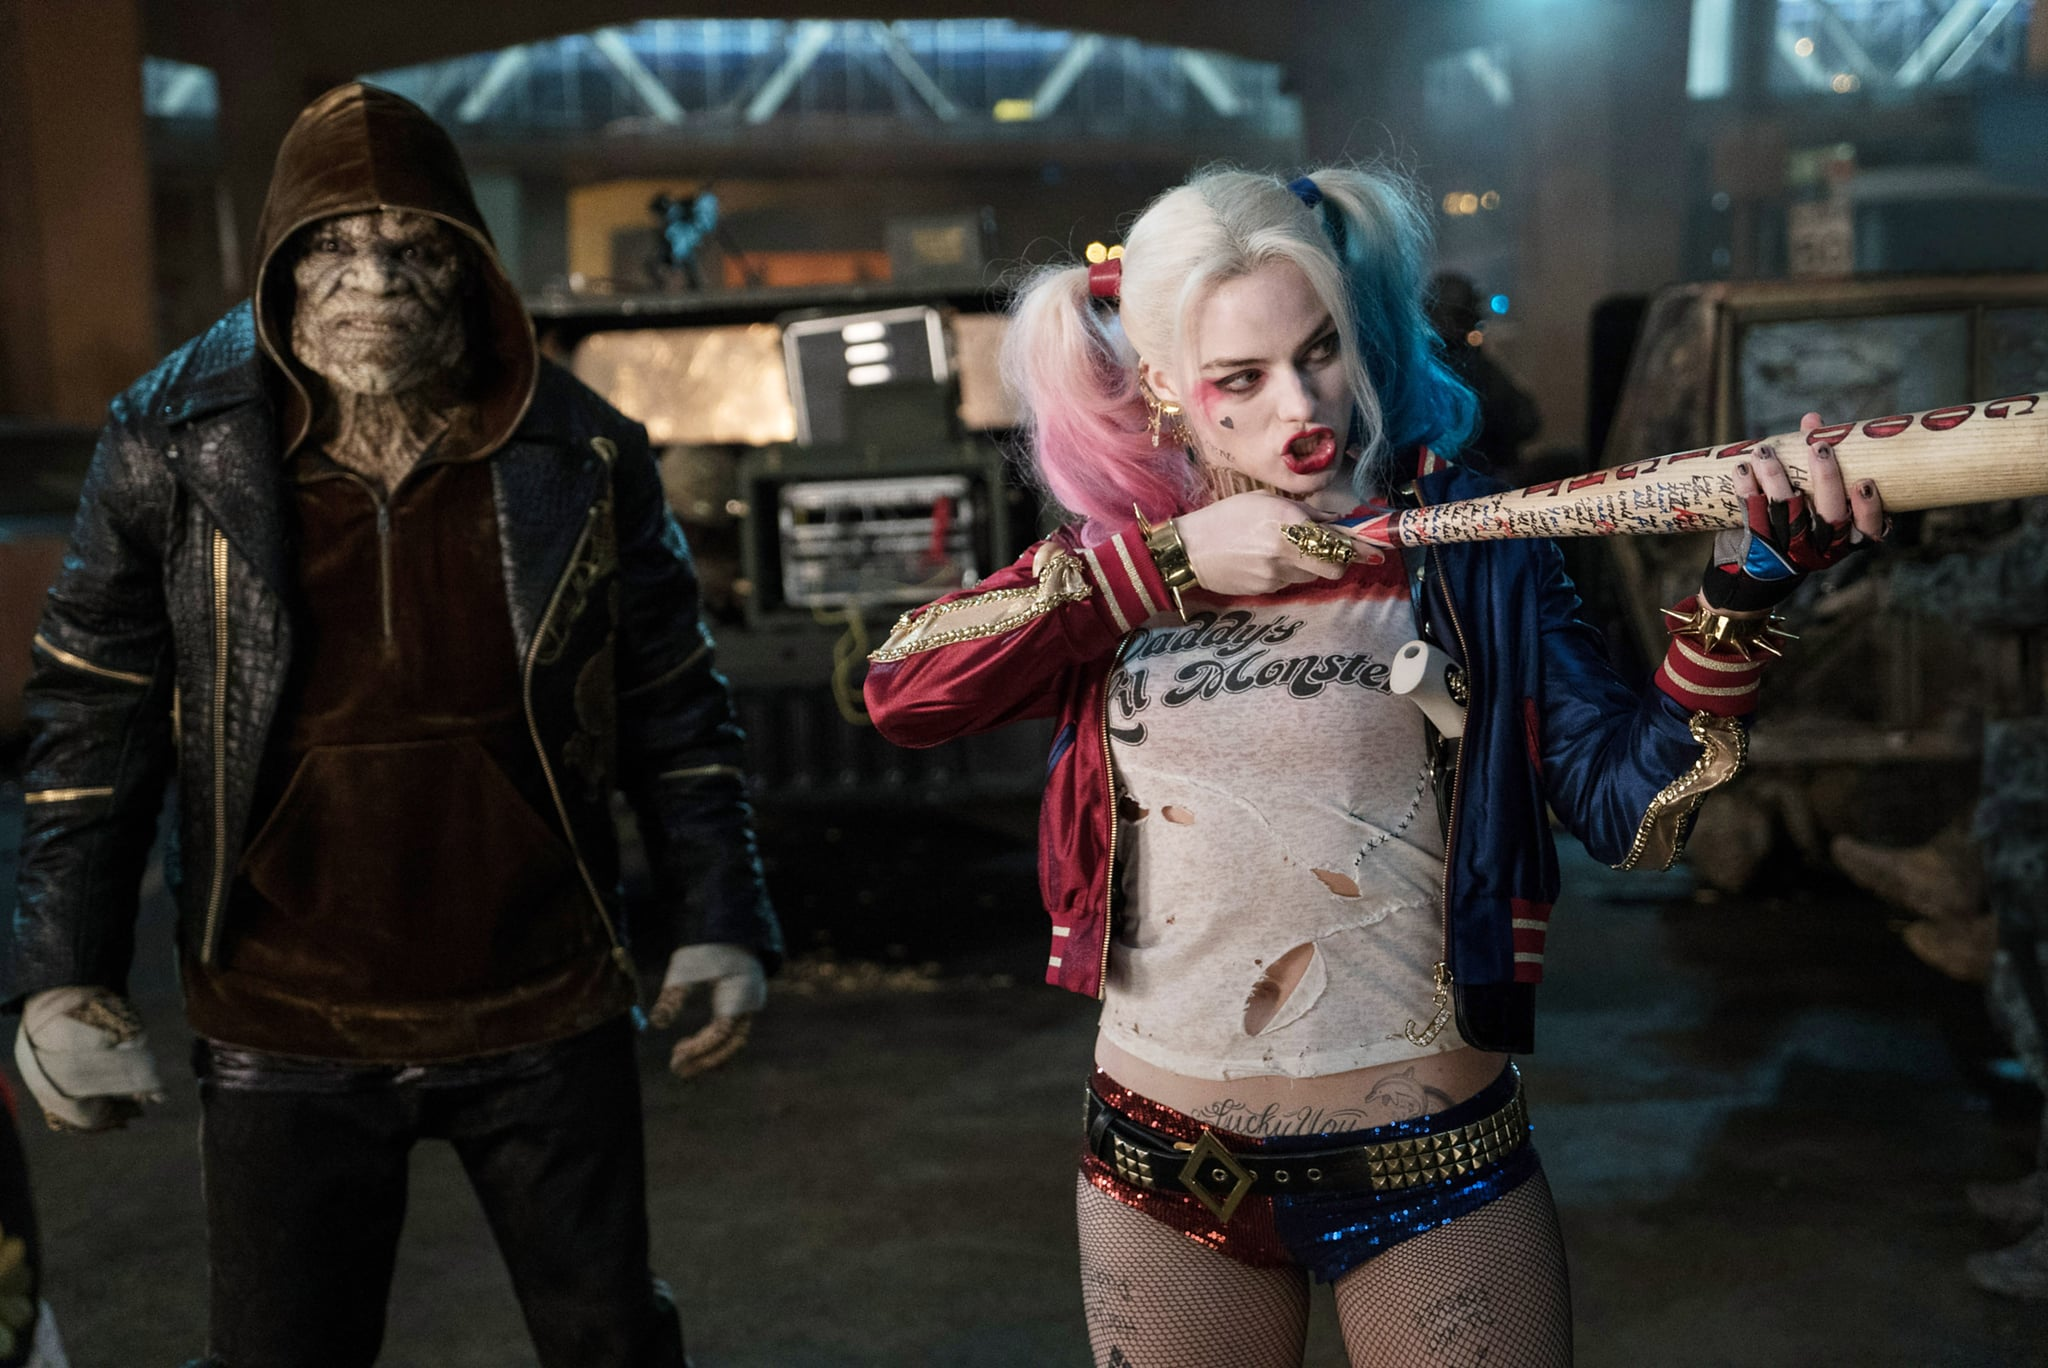 SUICIDE SQUAD, from left: Adewale Akinnuoye-Agbaje, Margot Robbie, 2016. ph: Clay Enos /  Warner Bros. / Courtesy Everett Collection